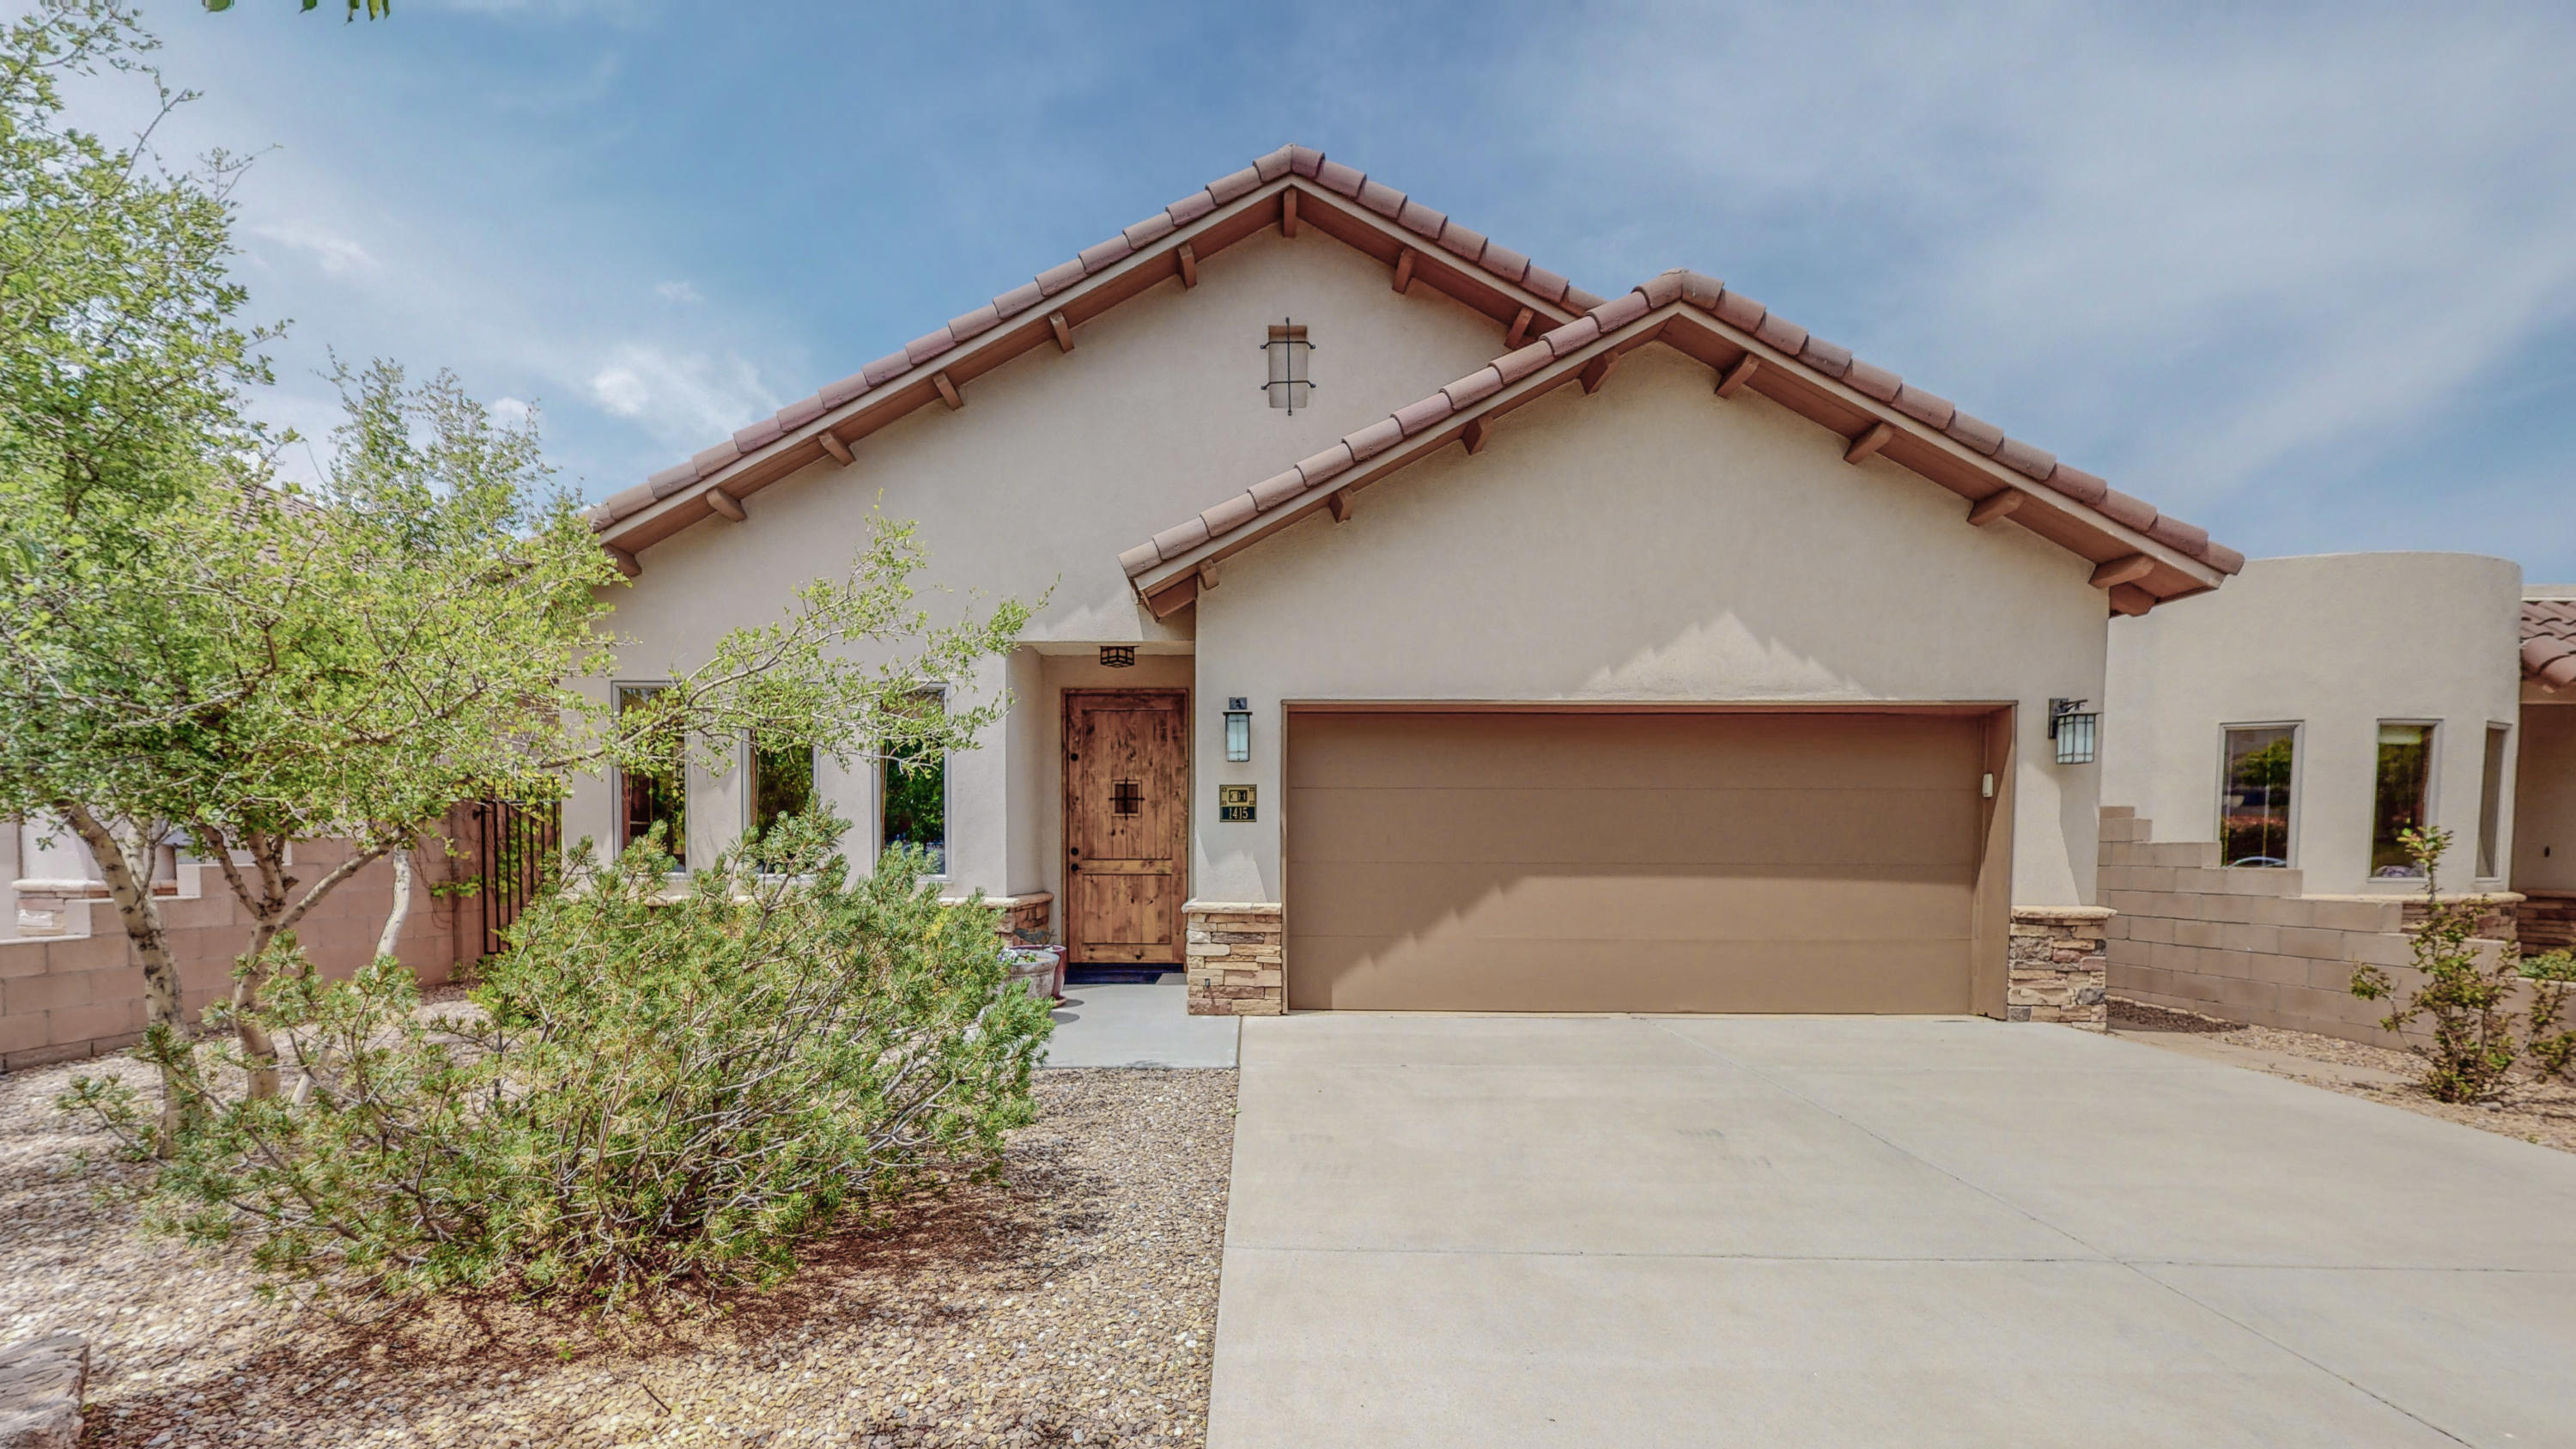 Exquisite home nestled in a small, private, gated community!  Expansive, gorgeous views of Albuquerque and miles to the west.  High quality materials and construction throughout.  Green Built 2008. Sellers took extra care in design of this semi-custom home.  Lovely details from slate entry to oak flooring to clearstory windows to expanded master.  Generous kitchen appointed with granite counters and abundant cabinetry, built in pantry and buffet.  Kitchen nook and formal dining.  Private master anchors rear of home -- large master bath with sep shower and garden tub.  Walk-in closet.  2 additional bedrooms with full bath.  Ample storage throughout.  Amazing patio opens to spectacular view and low maintenance yard. Stunning views from much of home. Spiral stair winds to roof loft!